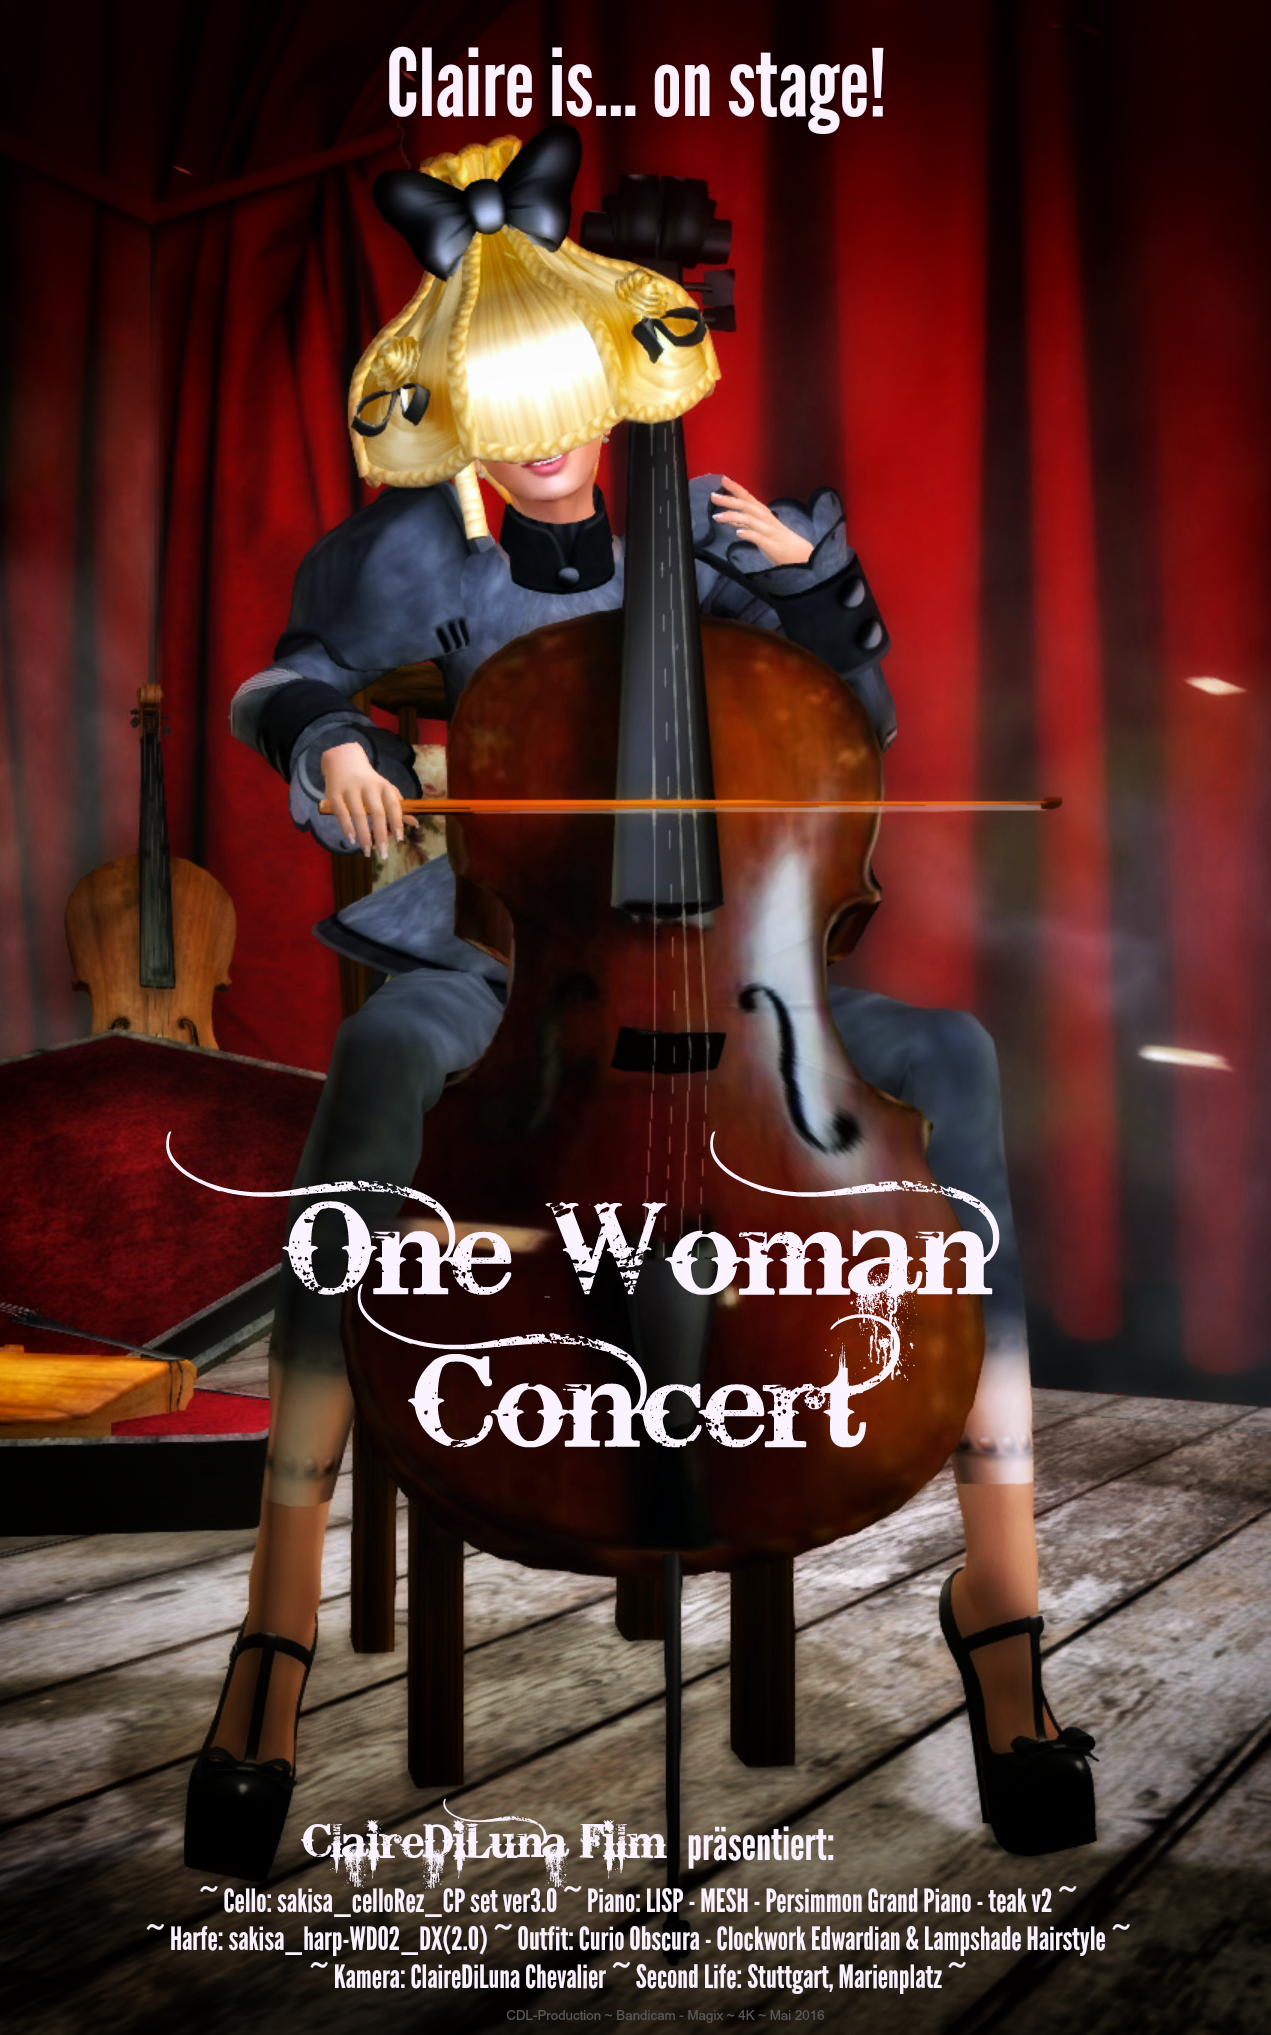 One Woman Concert - Movieposter